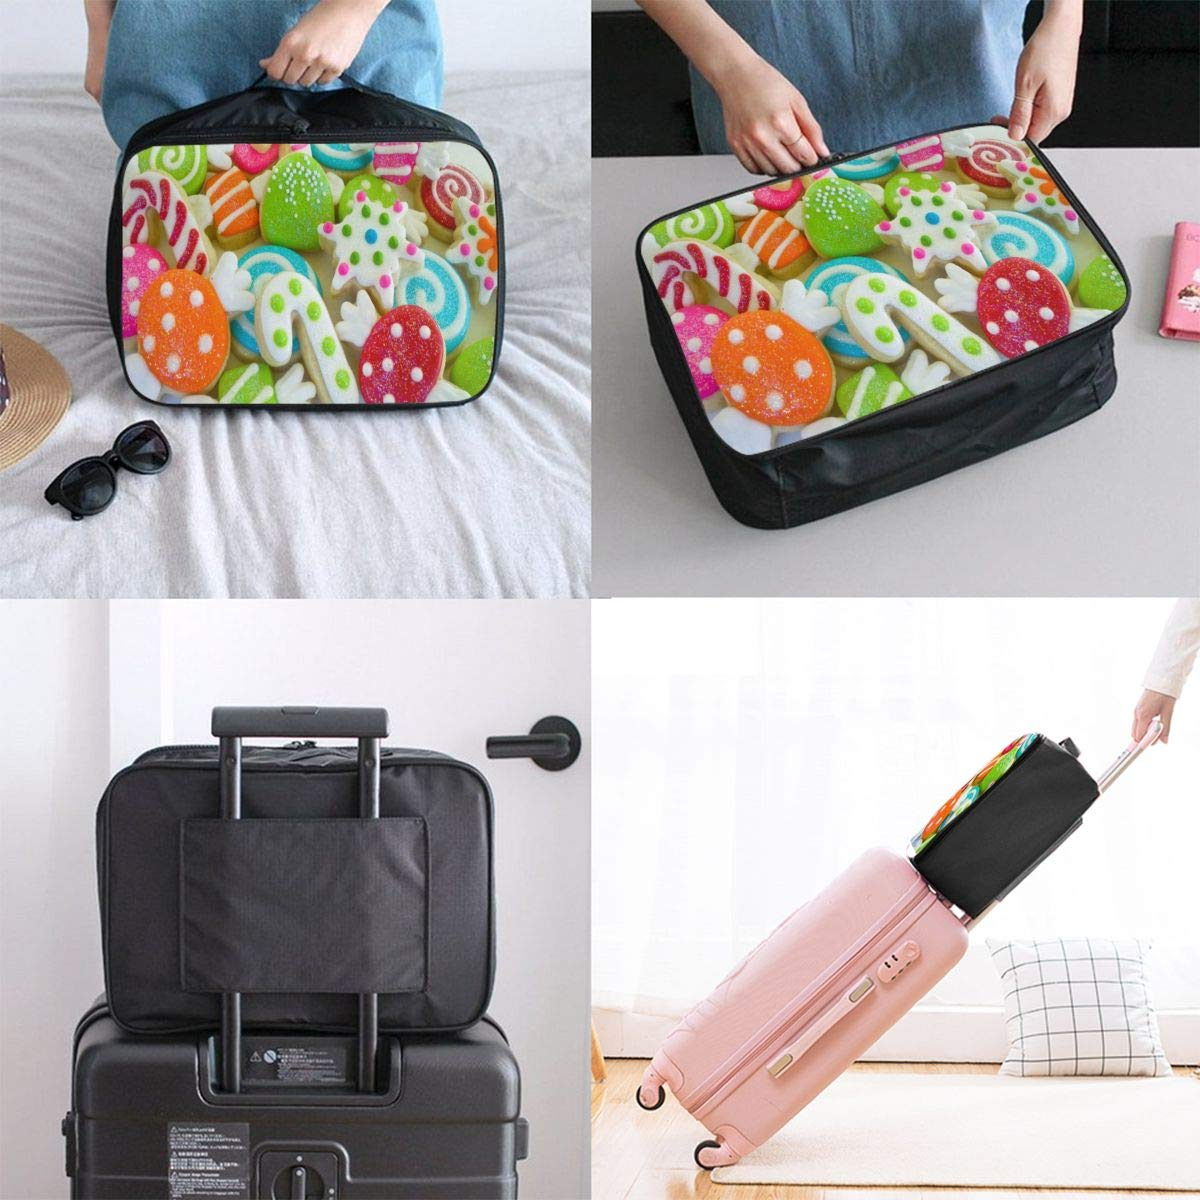 Lightweight Large Capacity Portable Luggage Bag Delicious Christmas Cookie Samples Travel Waterproof Foldable Storage Carry Tote Bag